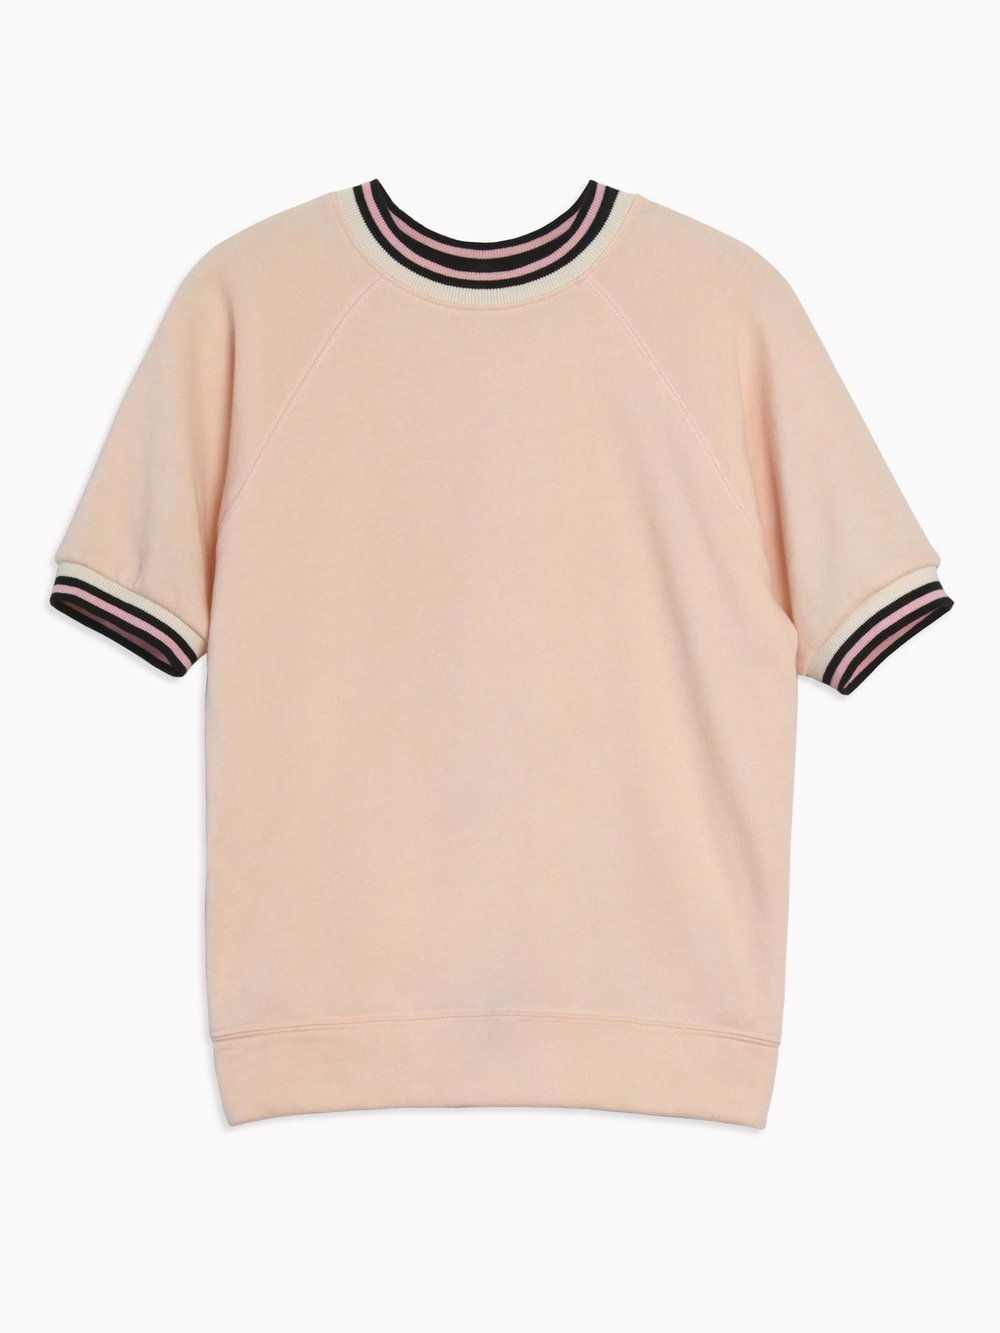 Gilda Sweatshirt in Bisque.jpg